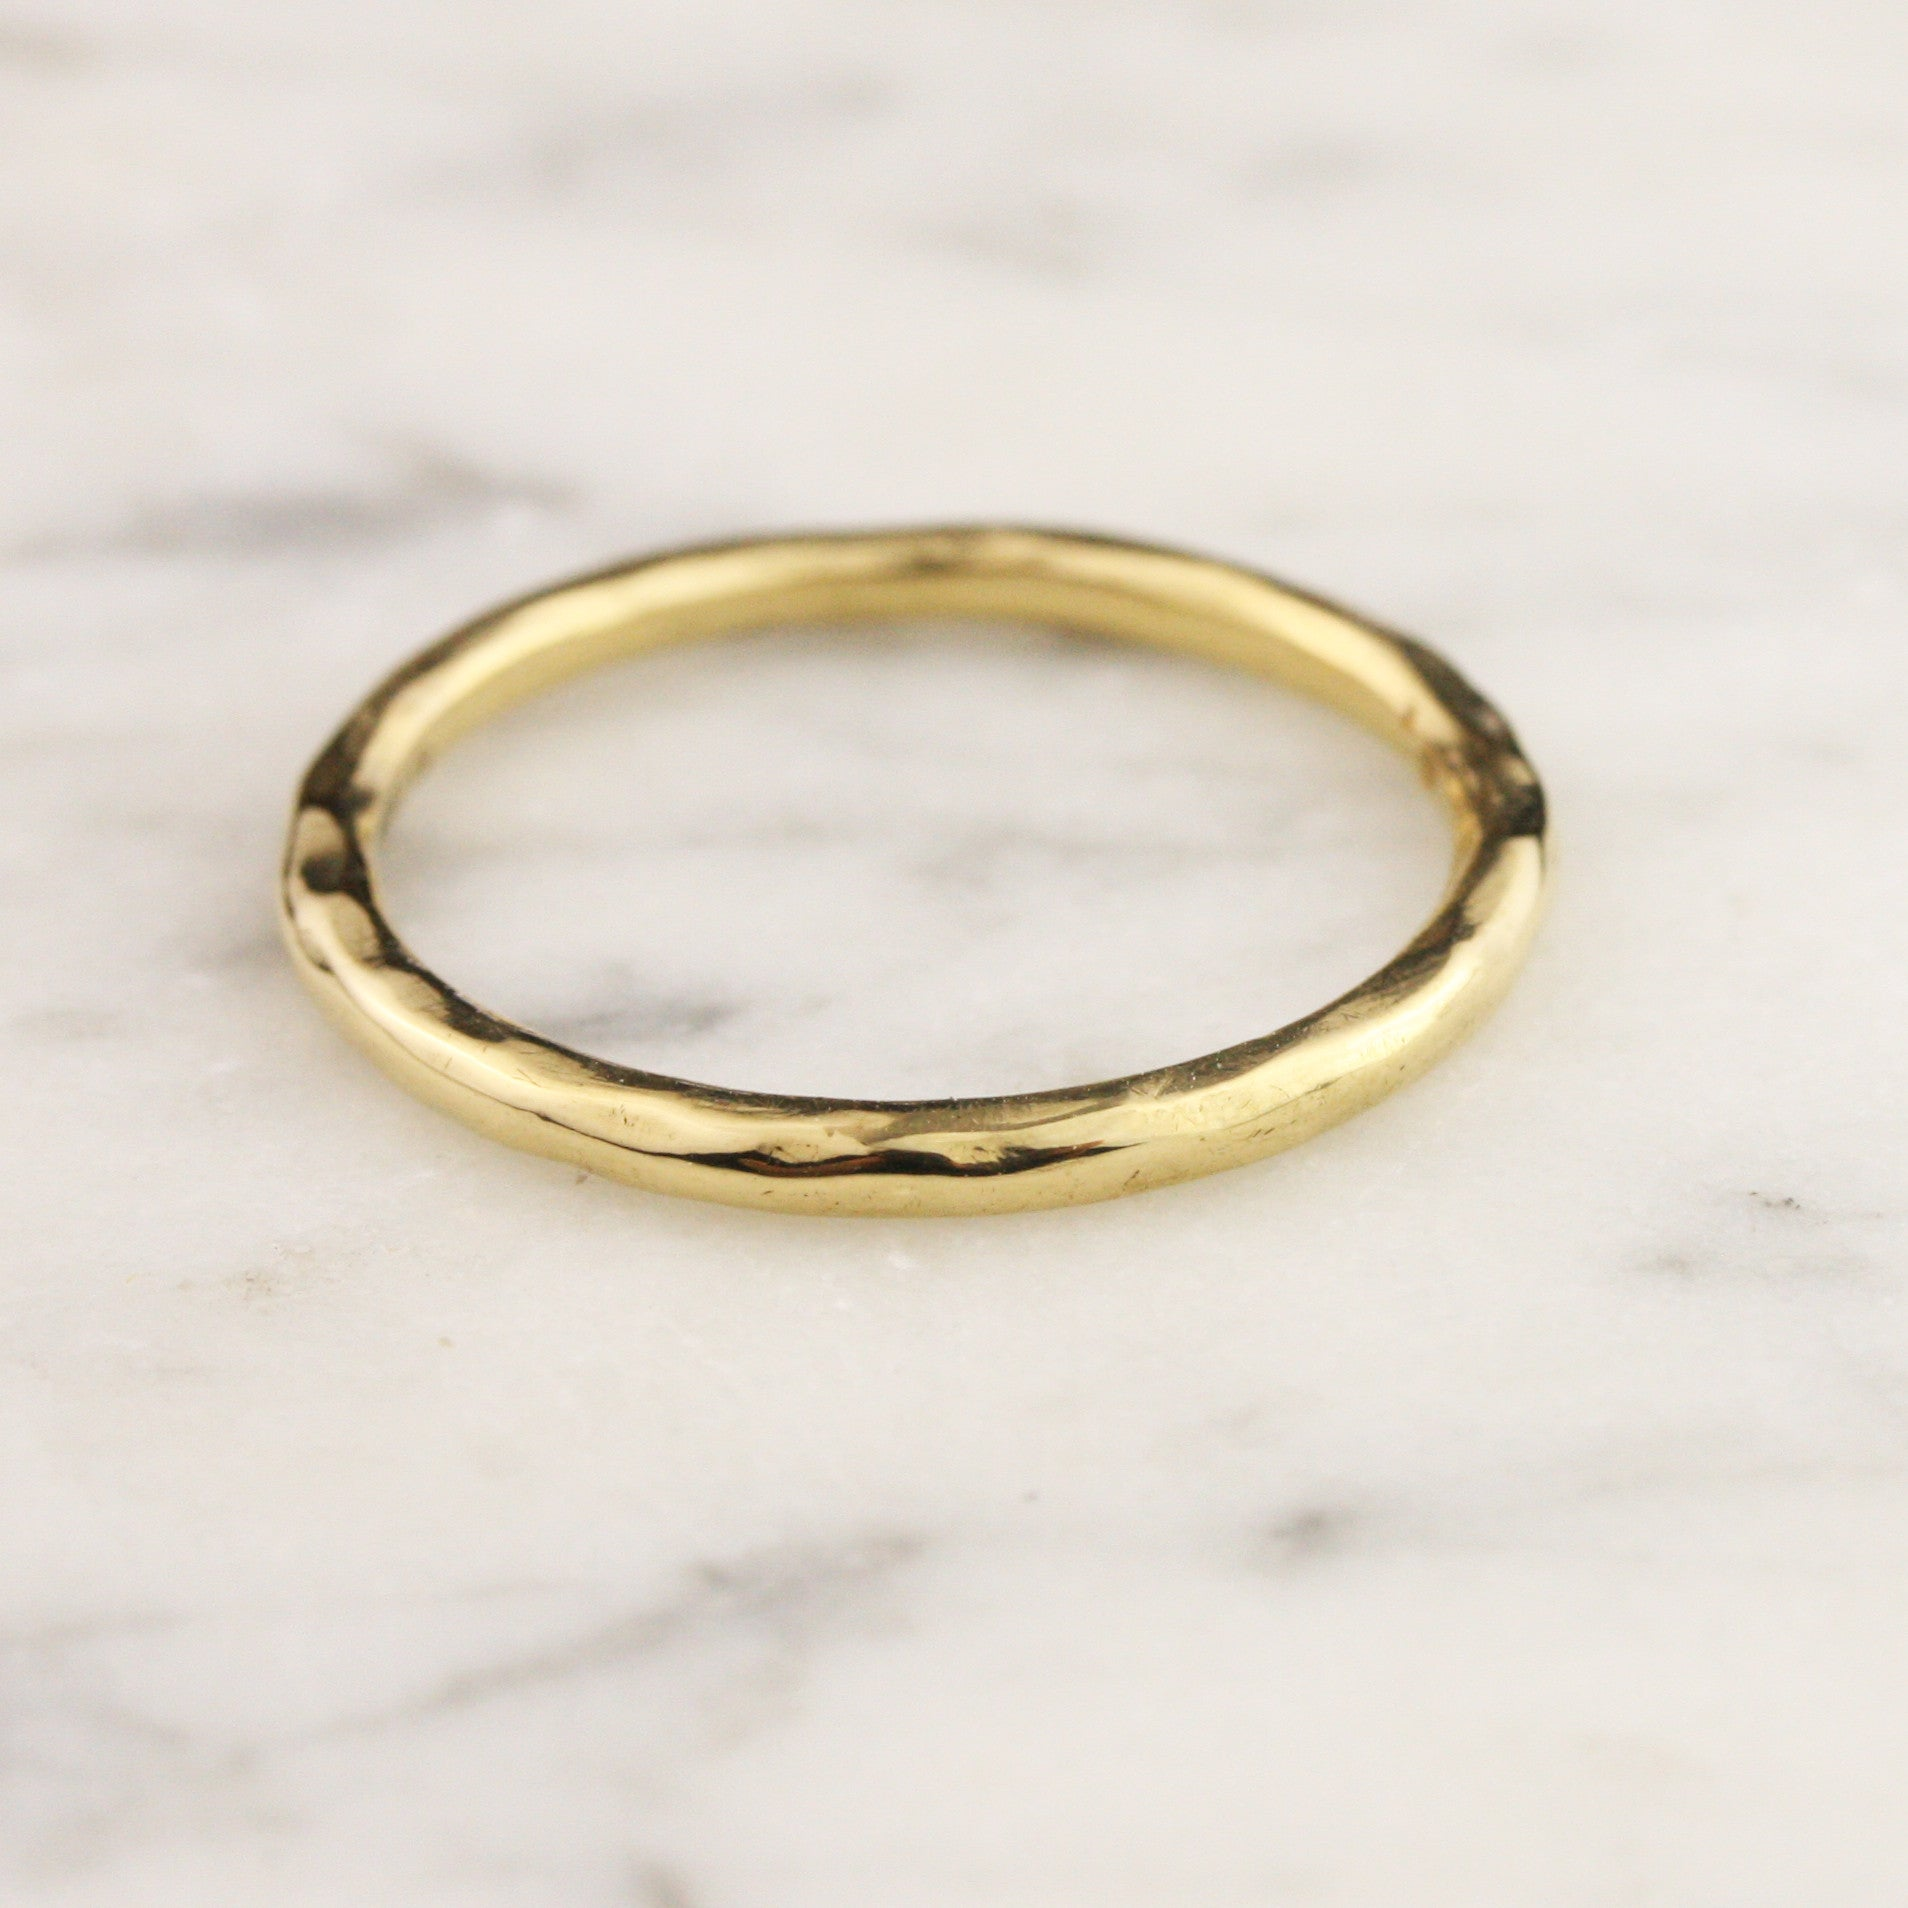 1d4fb56eaf8c1 1.8mm Hammered Full Round Stacking Ring - 14k – HoardJewelry